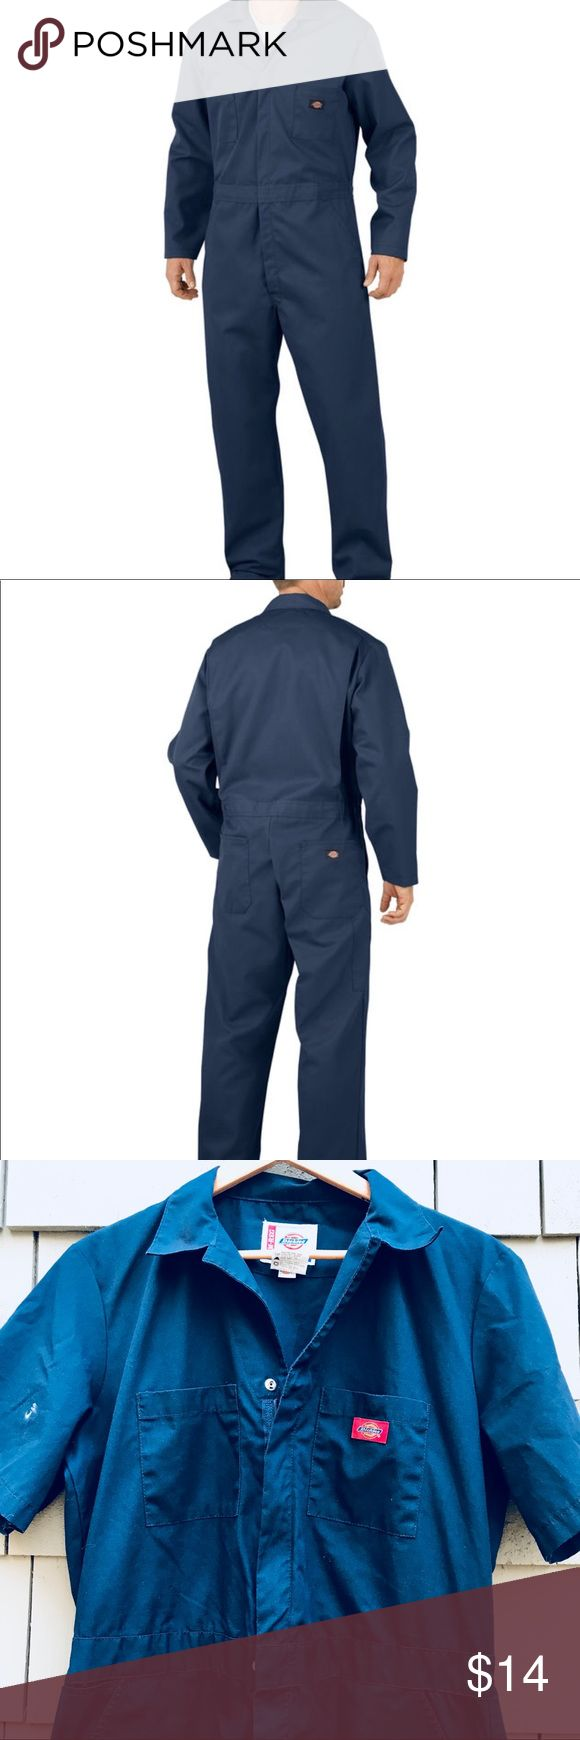 "Dickies Men's Coveralls in Navy Awesome gently used Dickies coveralls with an authentic (small) paint stain on the right shoulder.  Size men's regular length medium.  Approx 31"" inseam.  Fabric is 7.75 oz twill; 65% Polyester, 35% Cotton and wrinkle resistant.  Generous fit in shoulders and chest, bi-swing back, elastic waist inserts. Dickies Other"